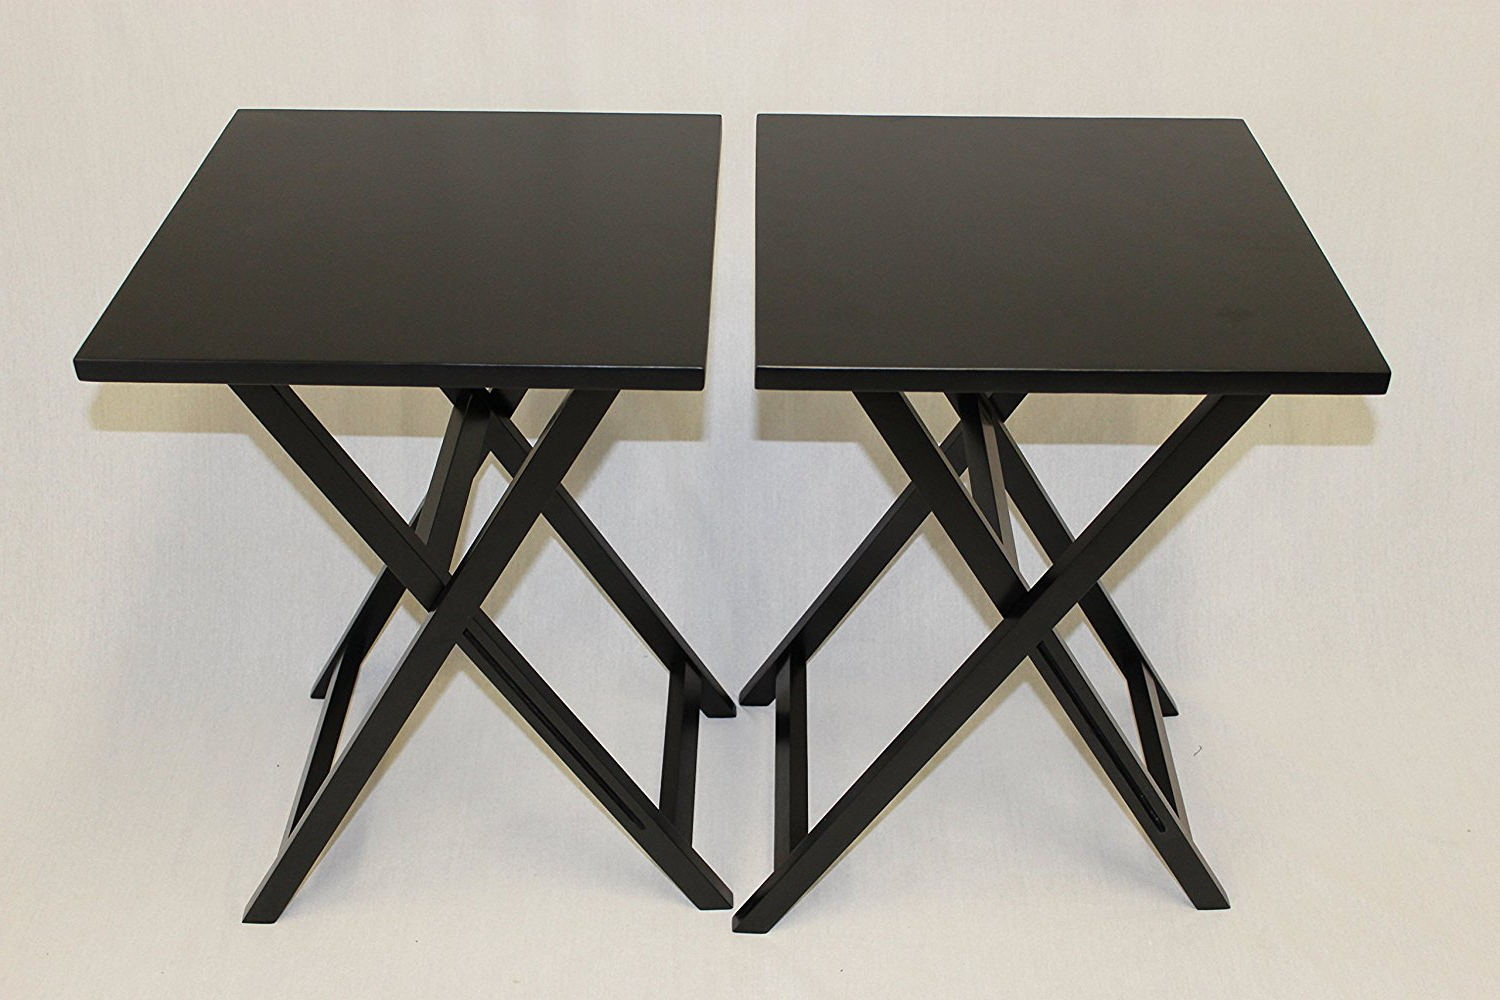 Most Recent Ehemco Ez Folding Tv Tray Table Square Top – Hard Wood In Black Set Pertaining To Folding Wooden Tv Tray Tables (View 15 of 20)